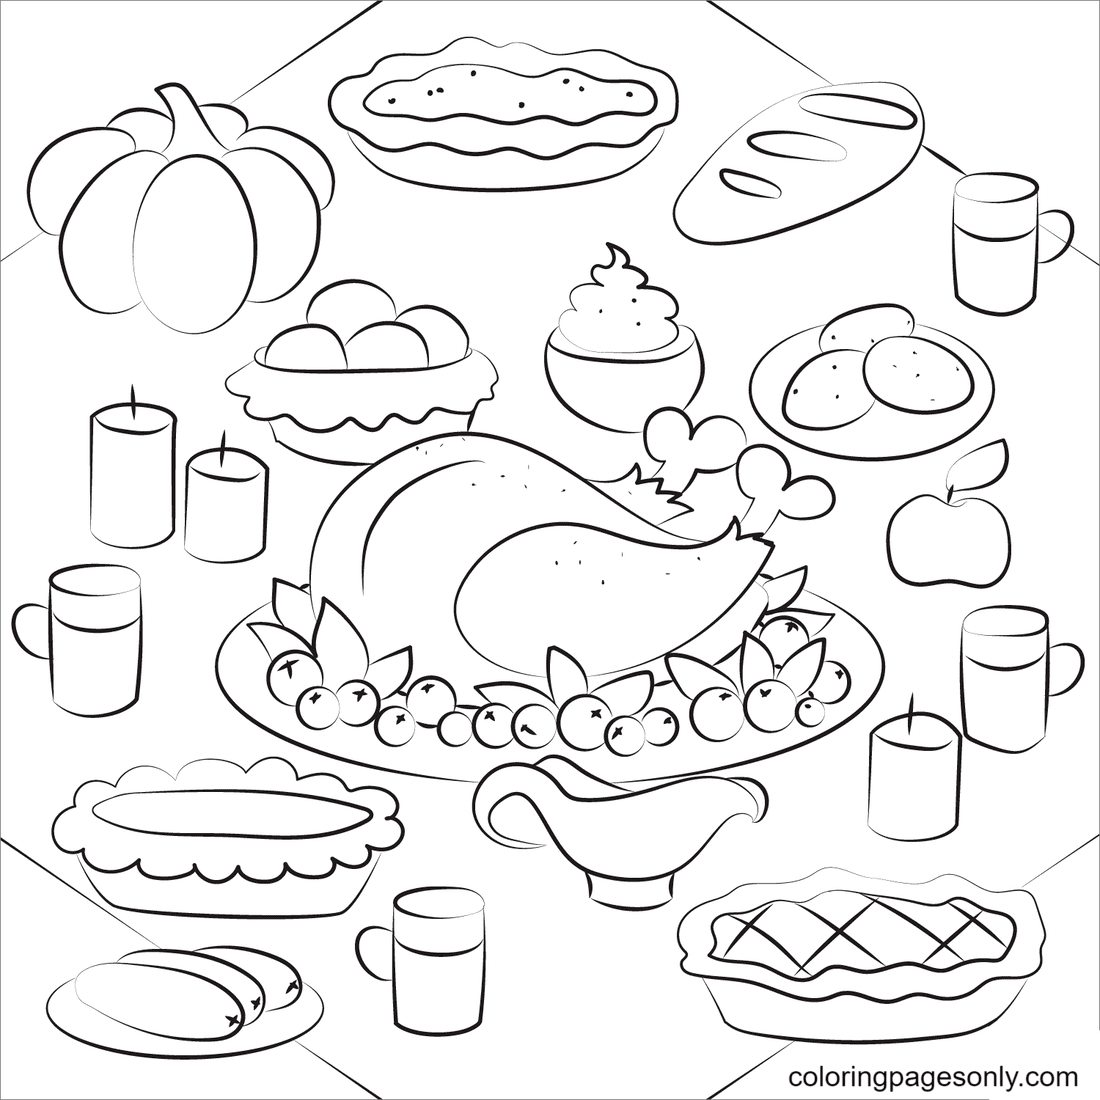 Thanksgiving Dinner with Turkey Dish Coloring Page